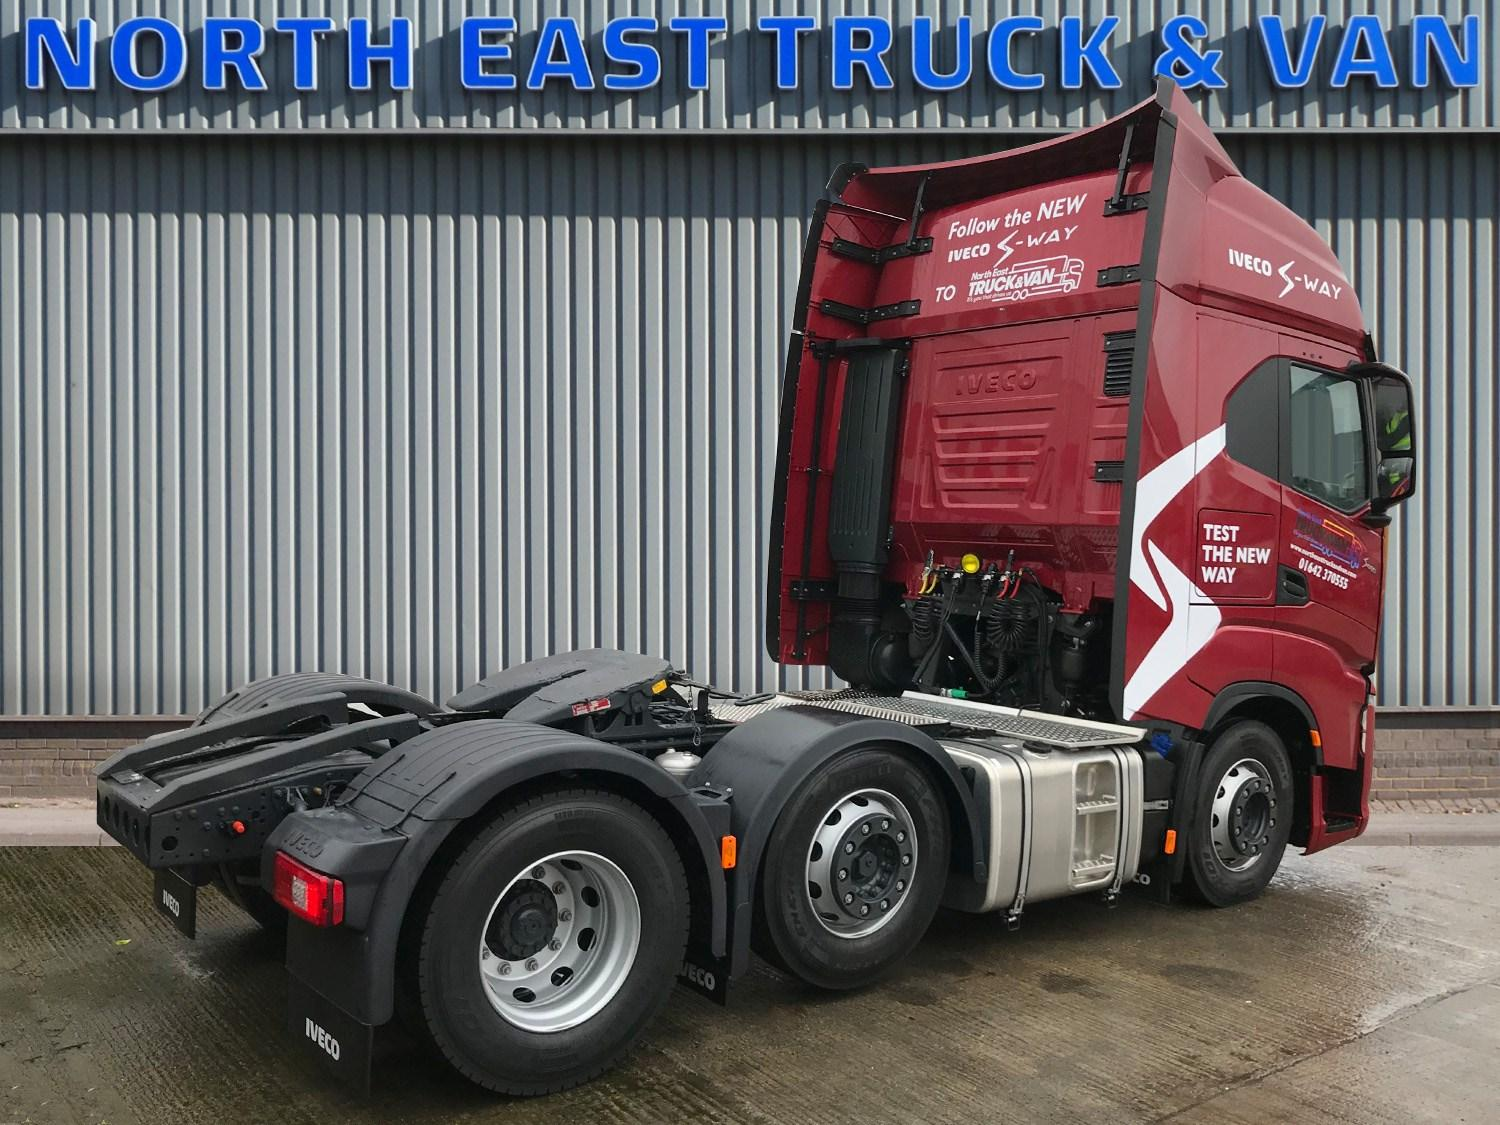 IVECO S-WAY Demo For Sale